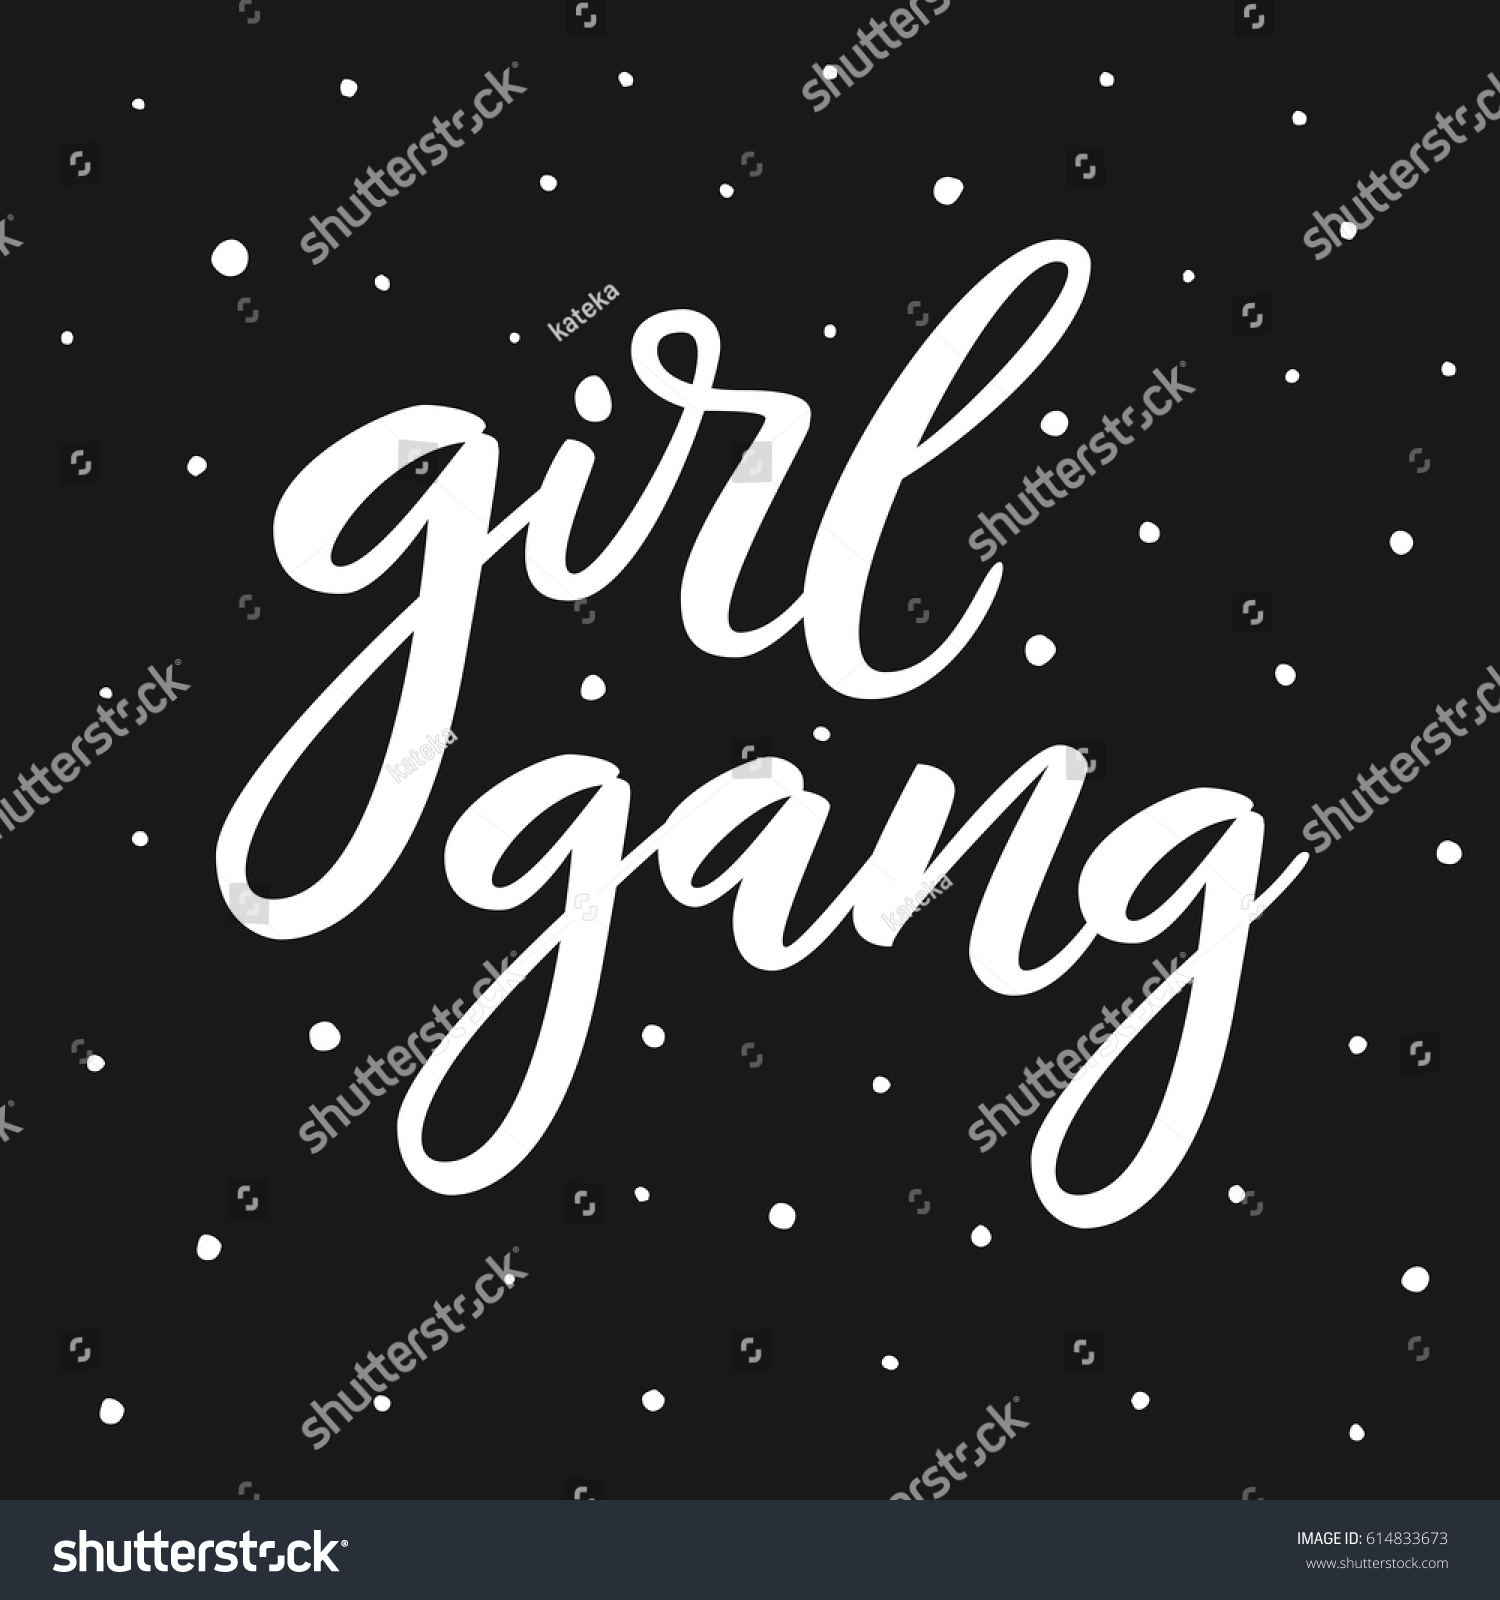 Girl gang woman motivational sign calligraphy stock vector